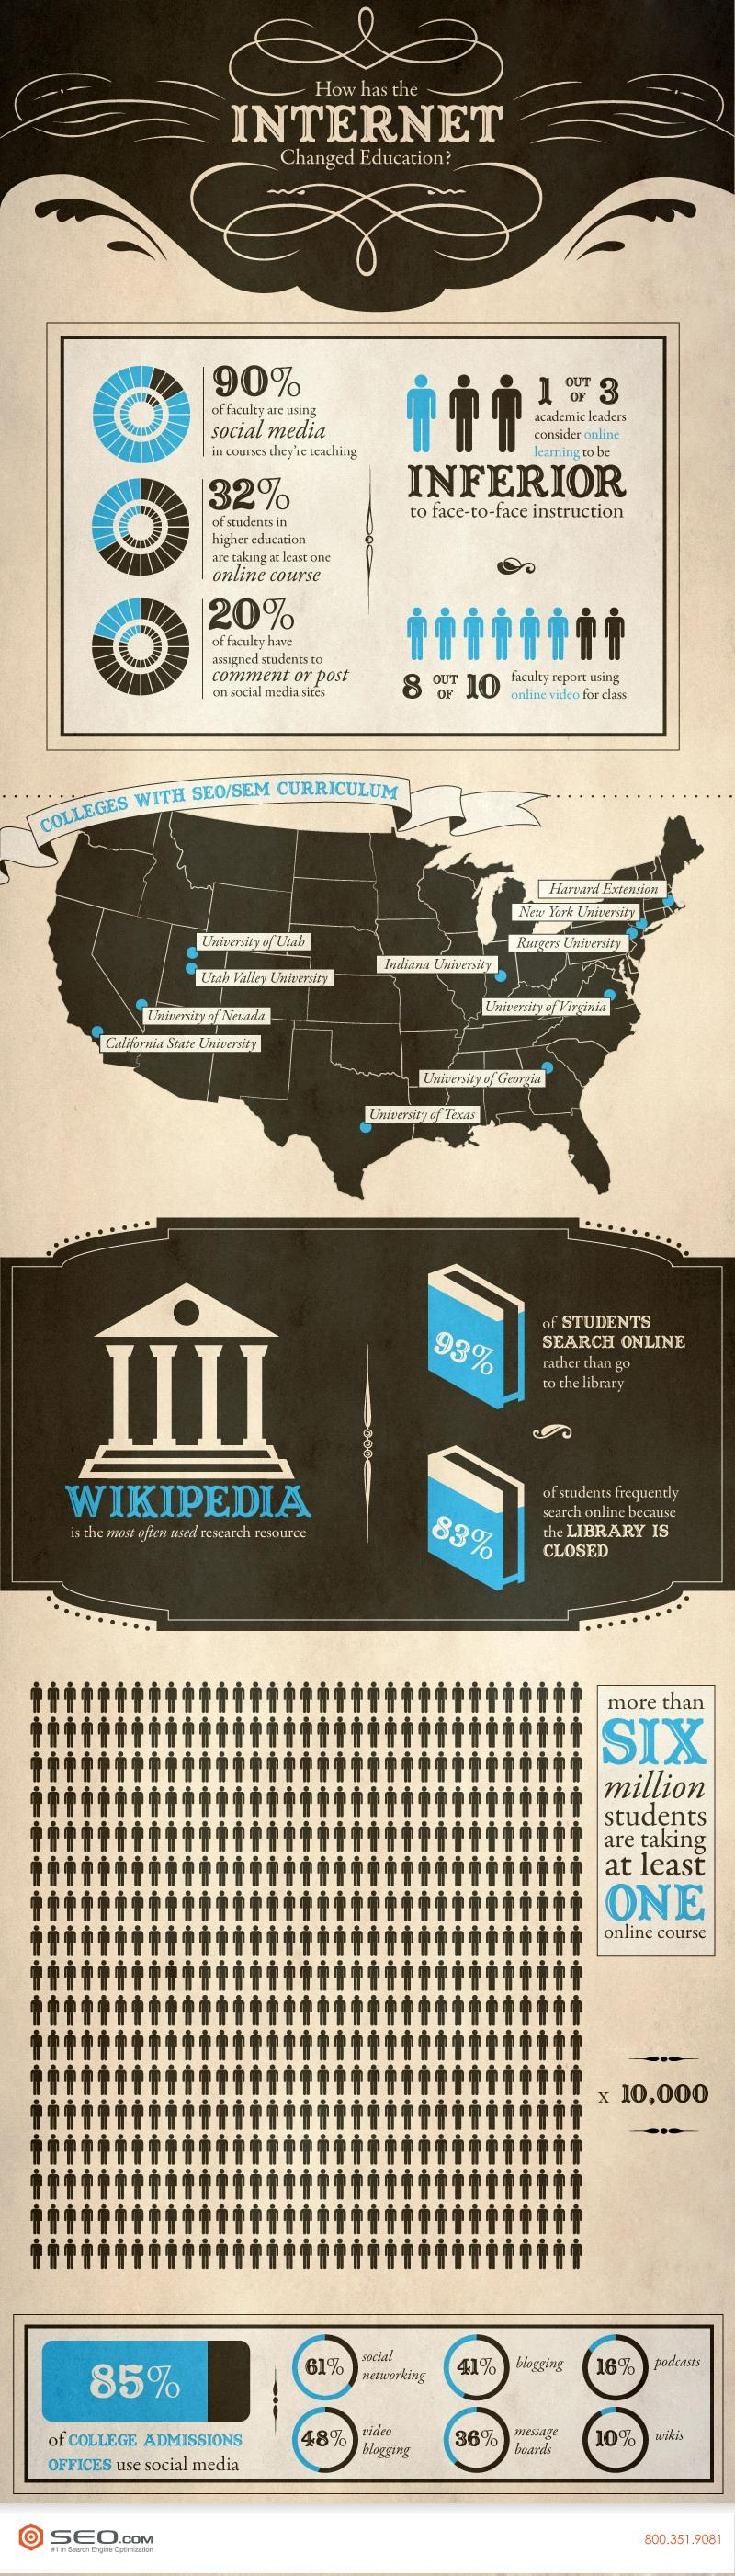 Infographic about how the internet has changed education